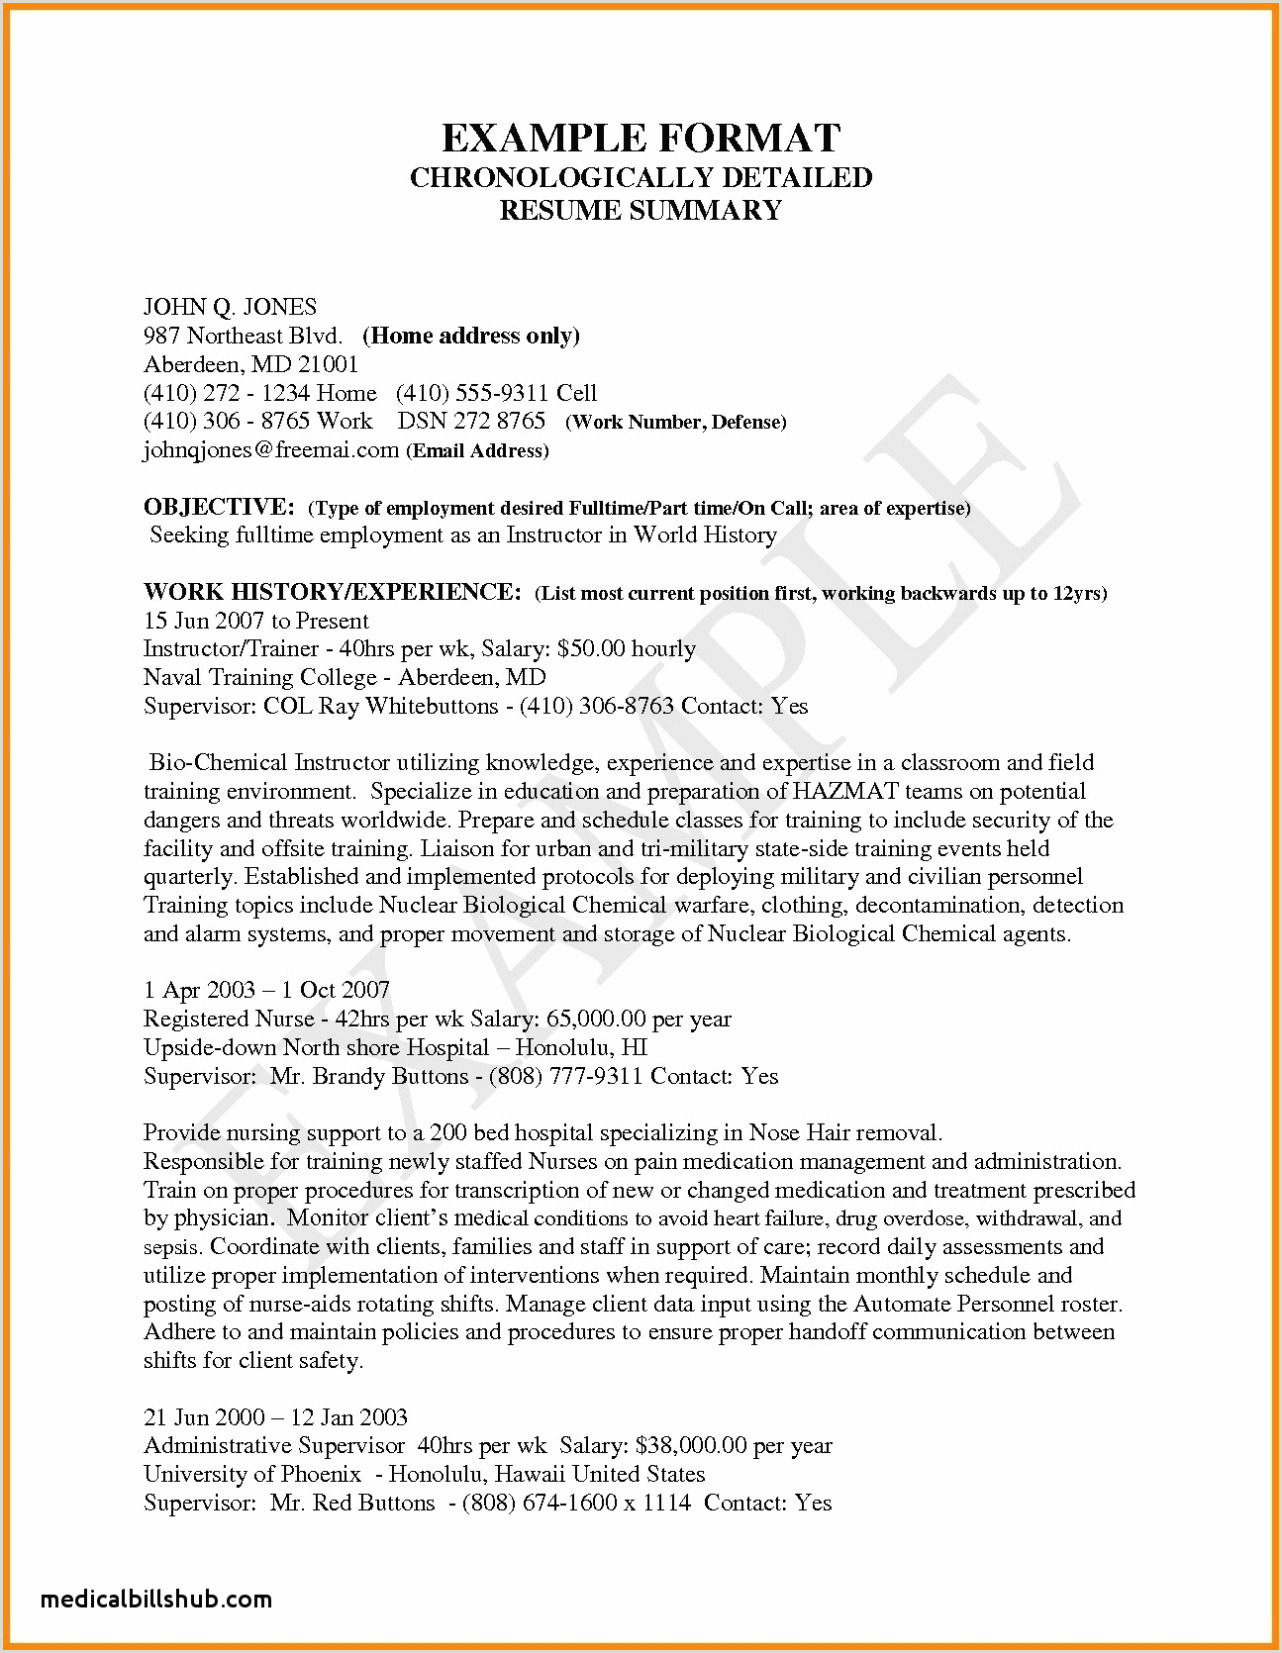 Cv Examples for First Job 10 Examples Of Teenage Resumes for First Job